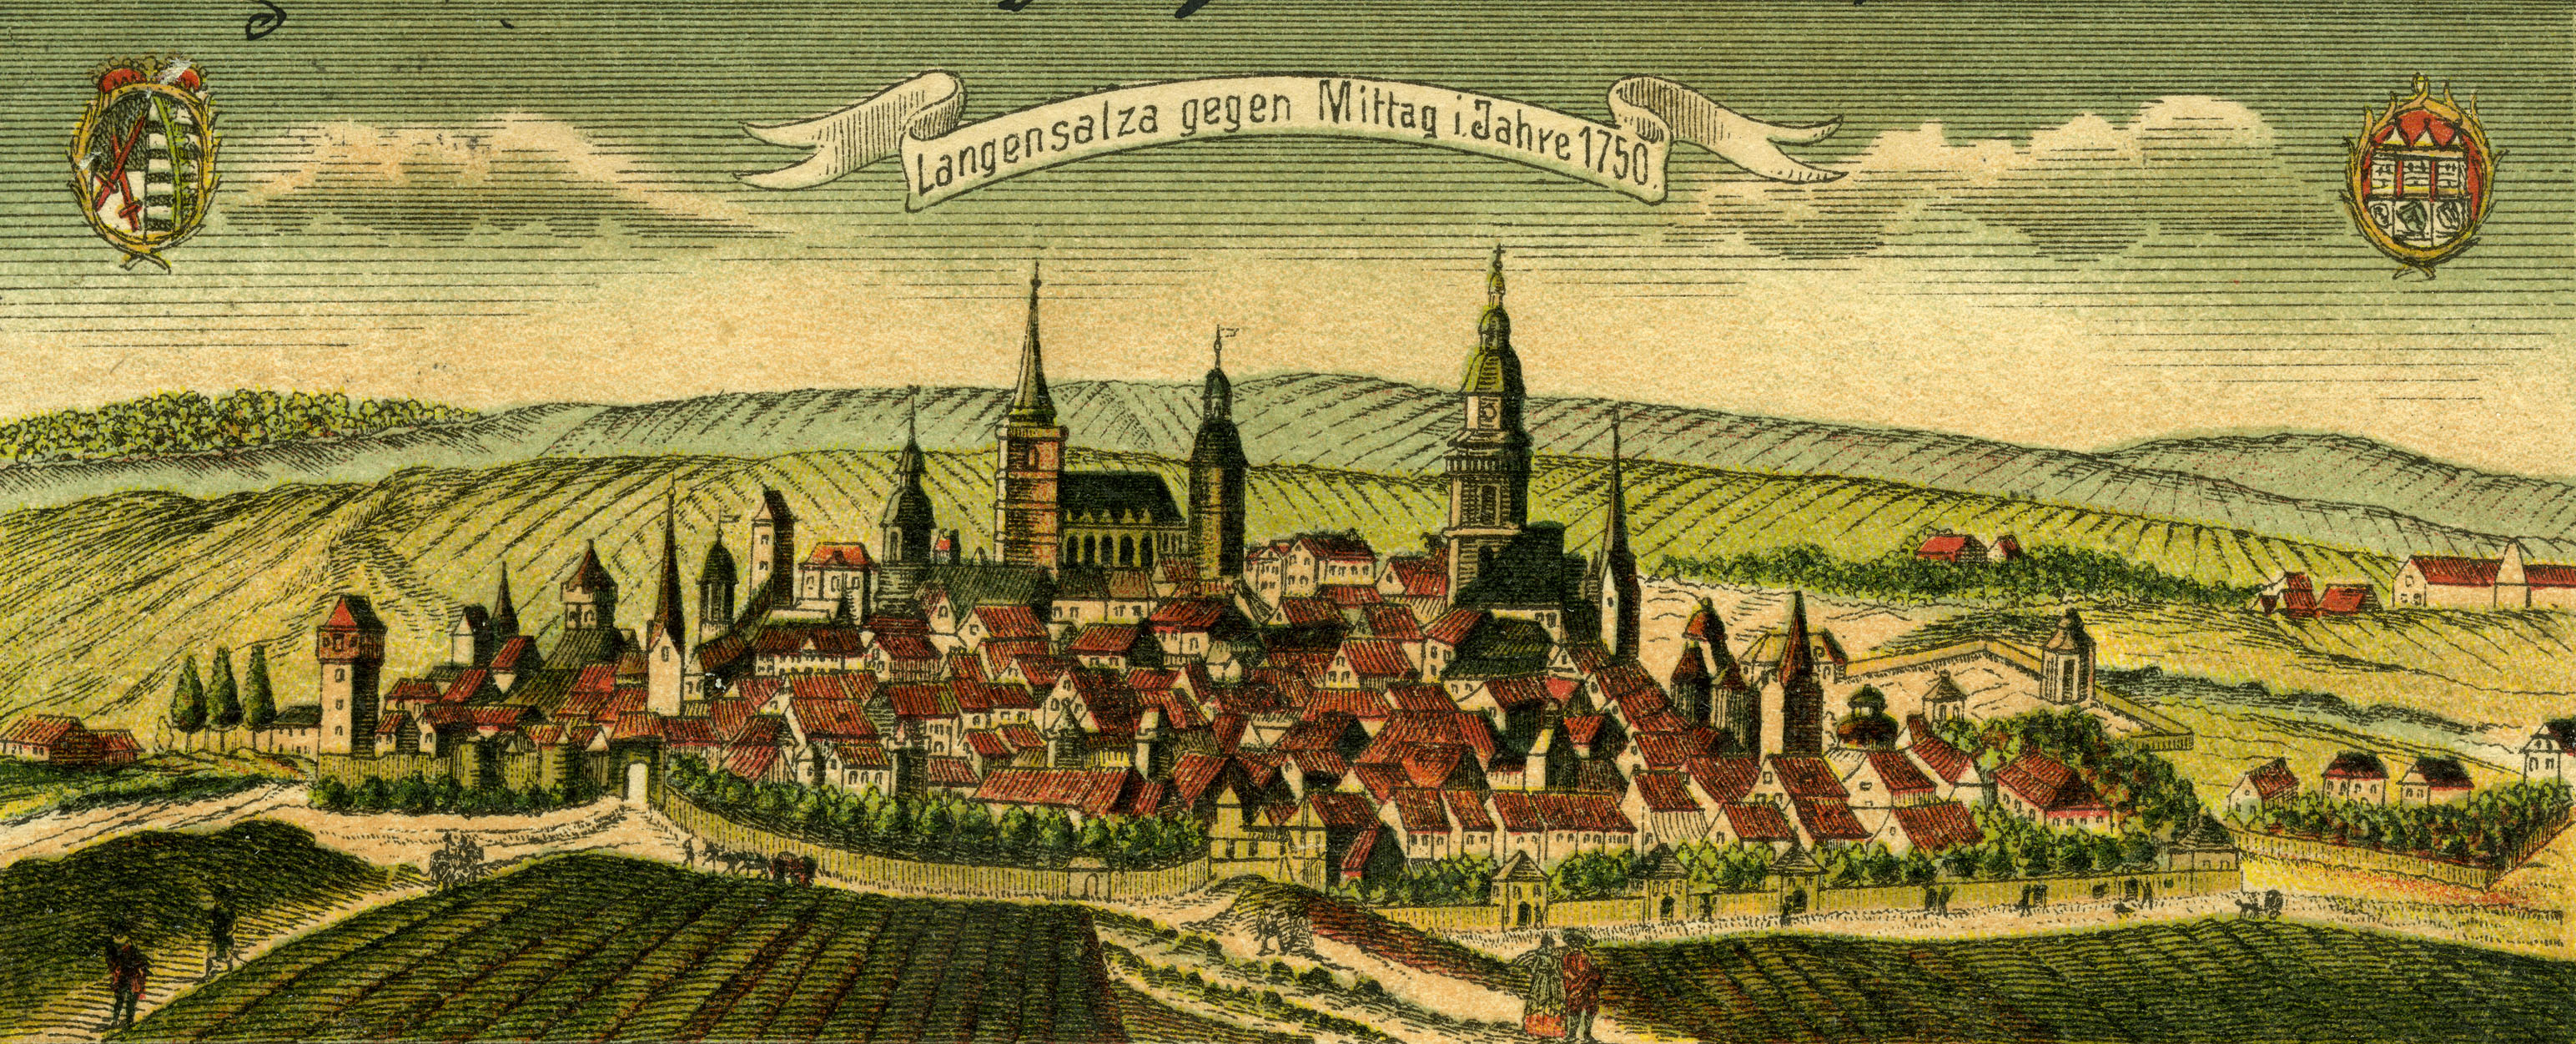 File:Langensalza-in-1750-from-a-german-postcard-